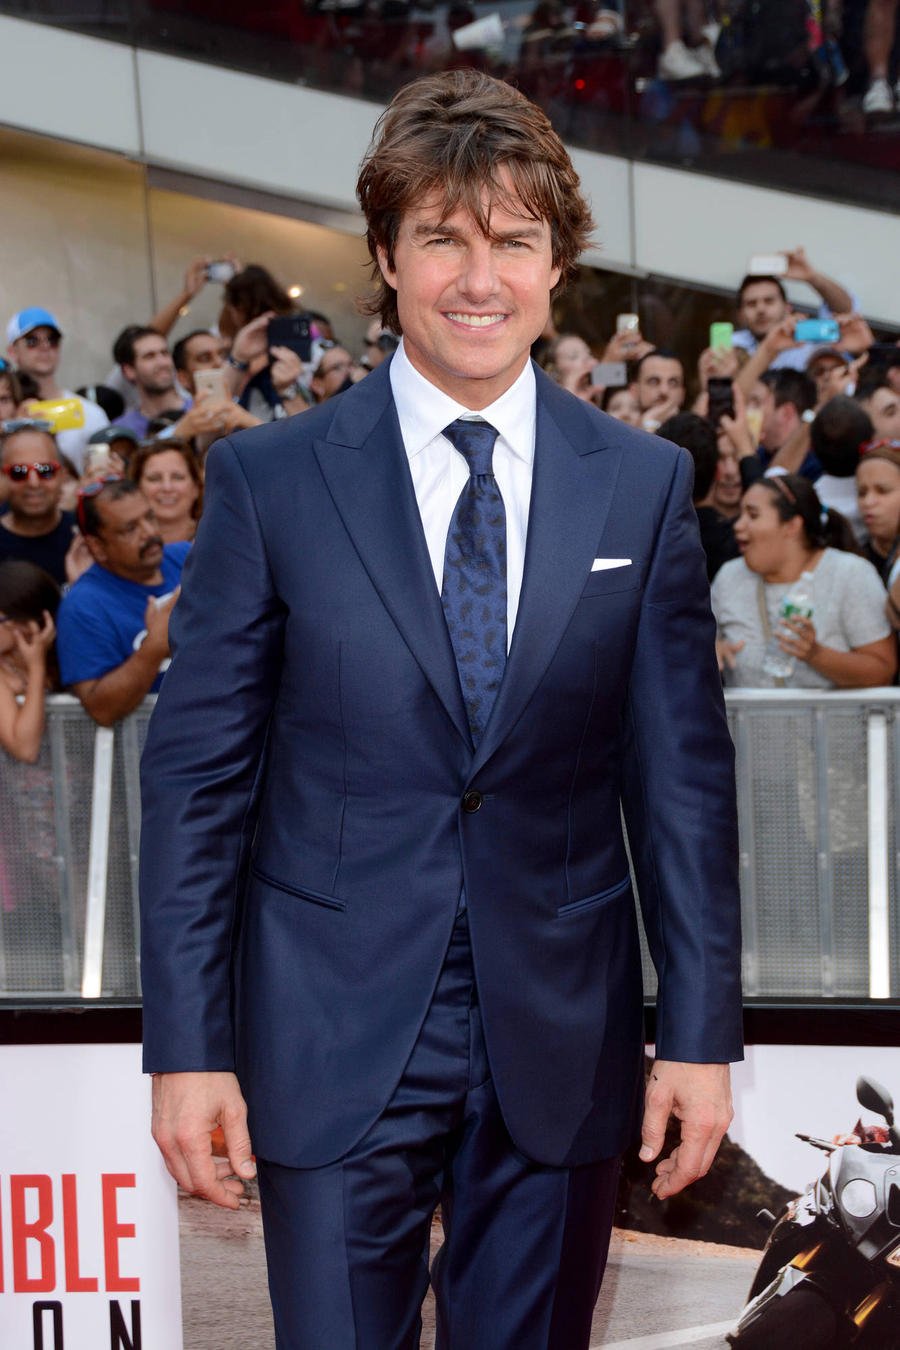 Tom Cruise Drug-trafficking Film Facing Second Wrongful Death Lawsuit